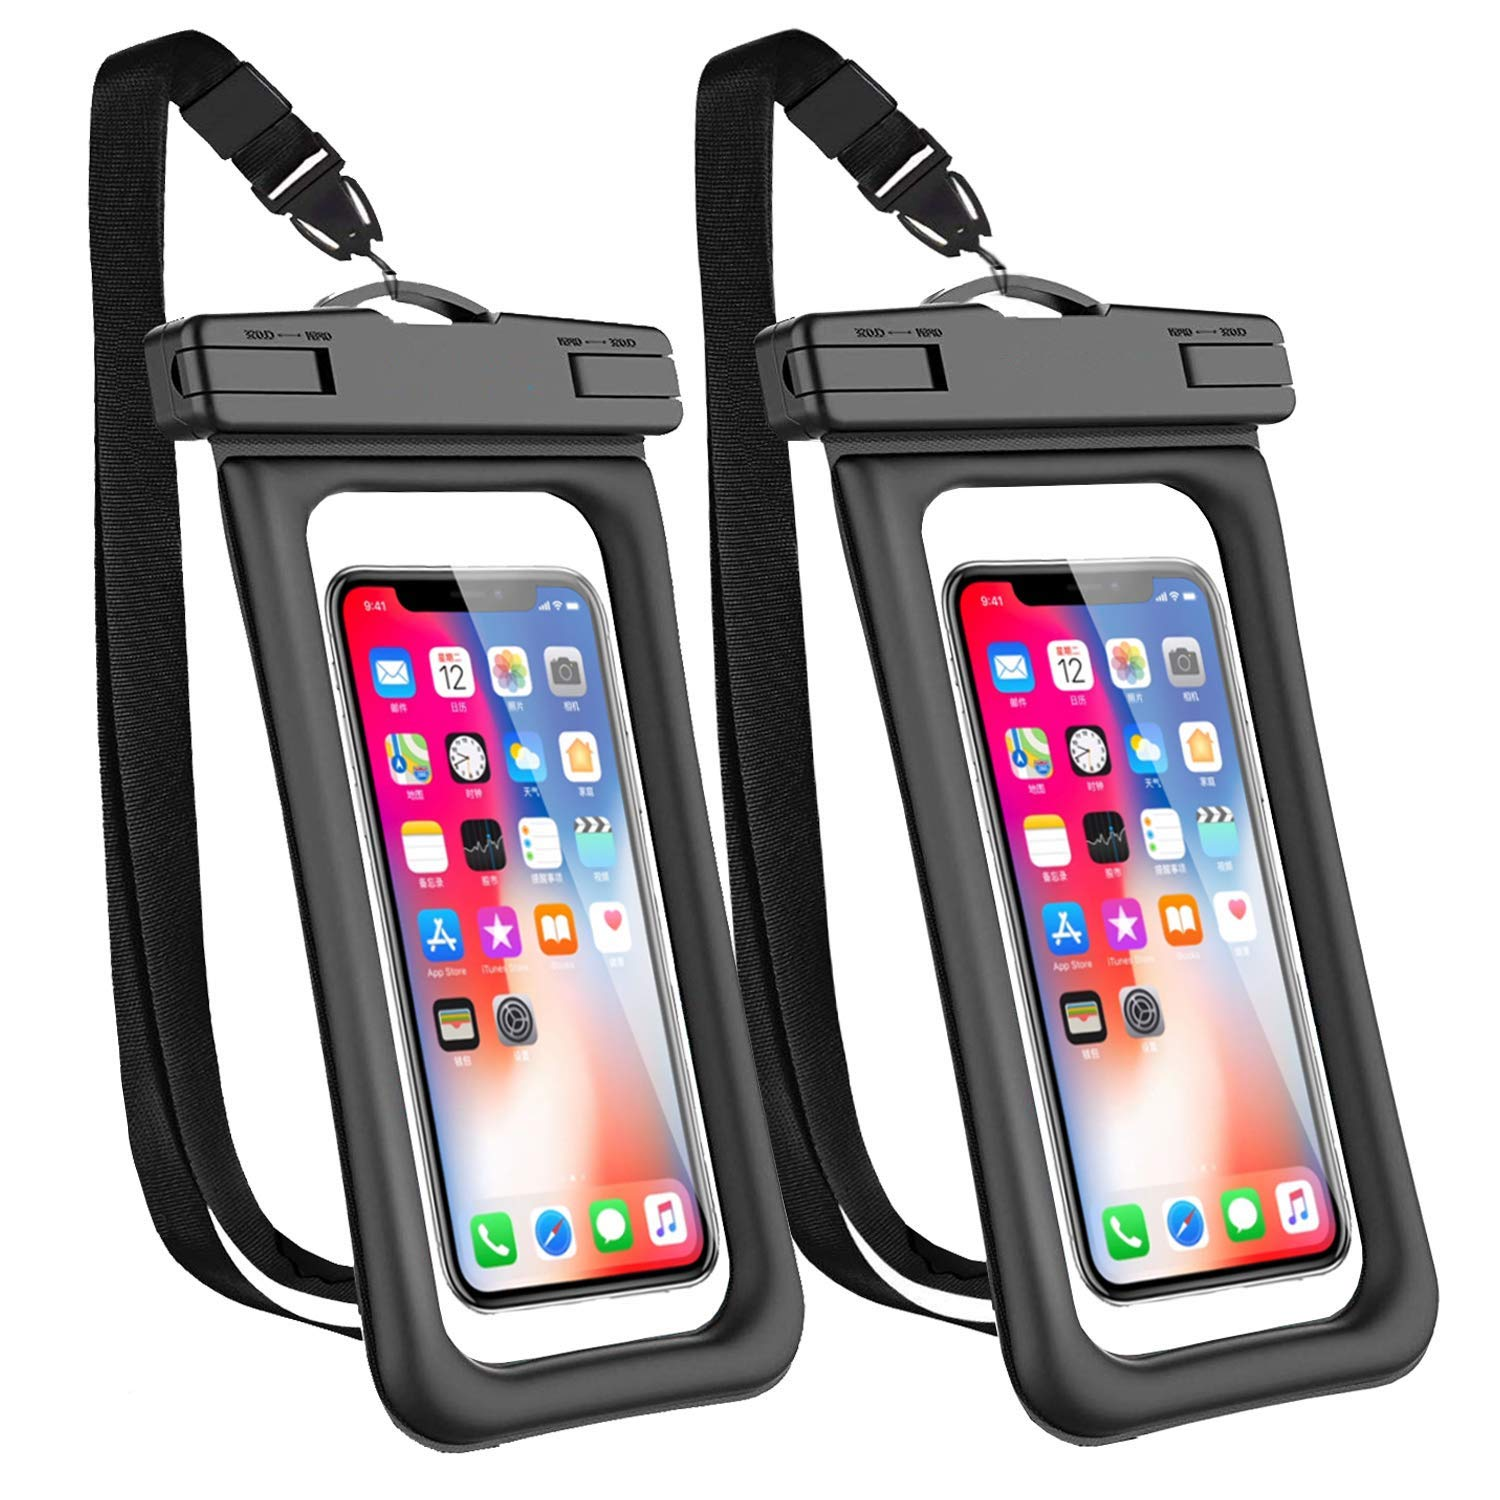 WJZXTEK Universal Floating Waterproof Case